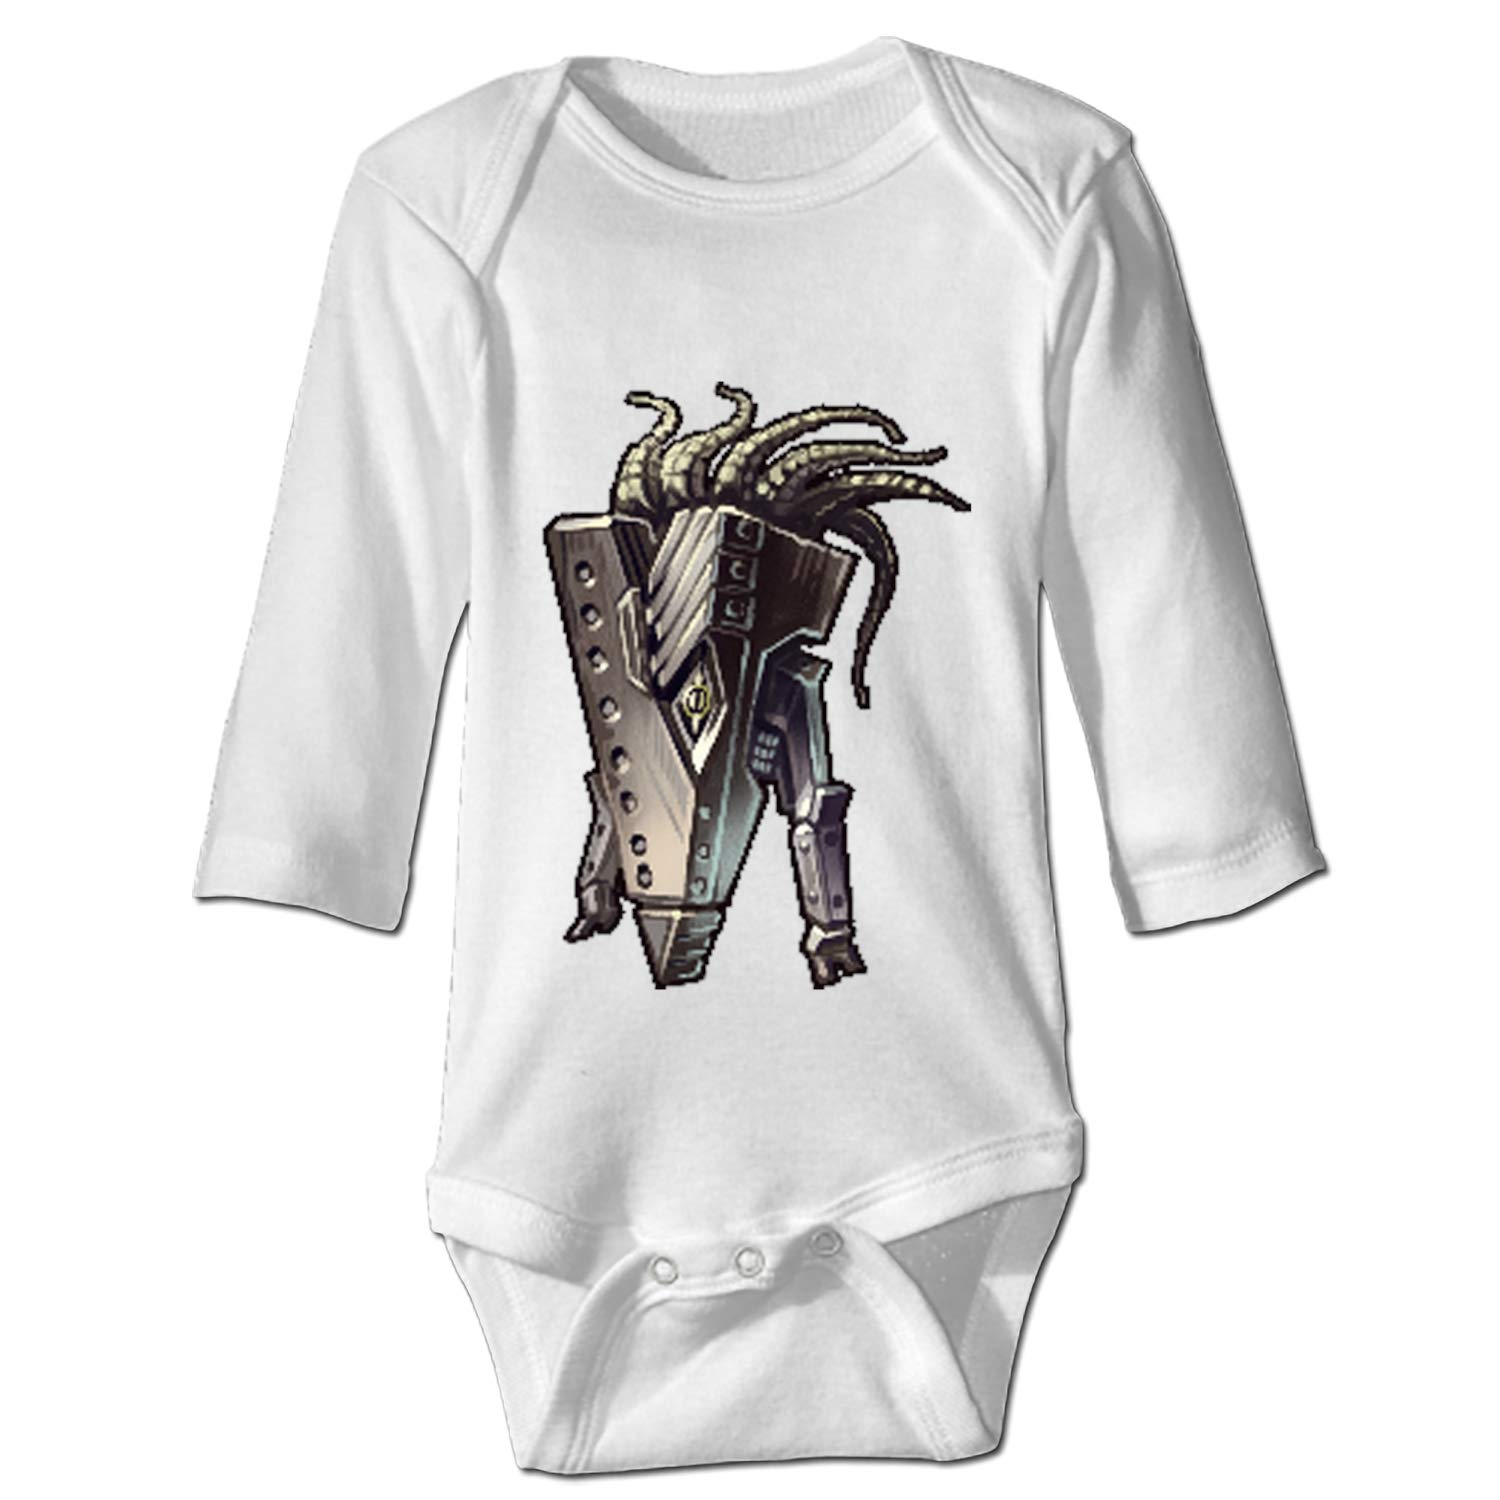 Baby Cash Dog Bodysuits Rompers Outfits Clothes,Long Sleeve